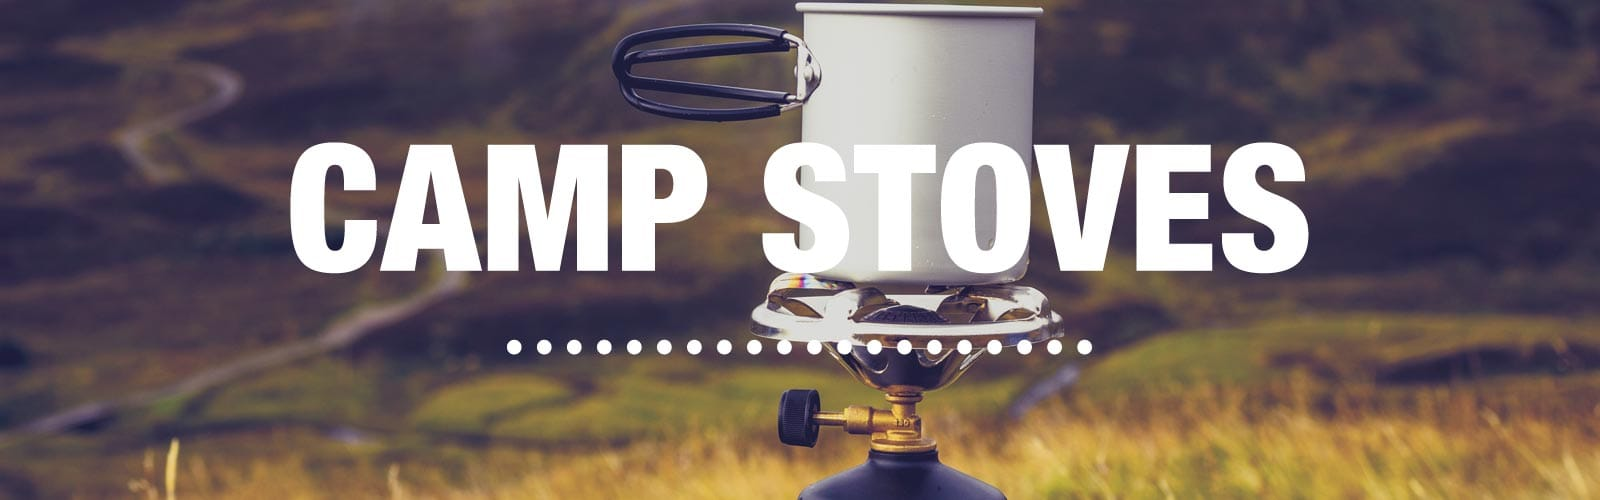 Camping Stove Guide